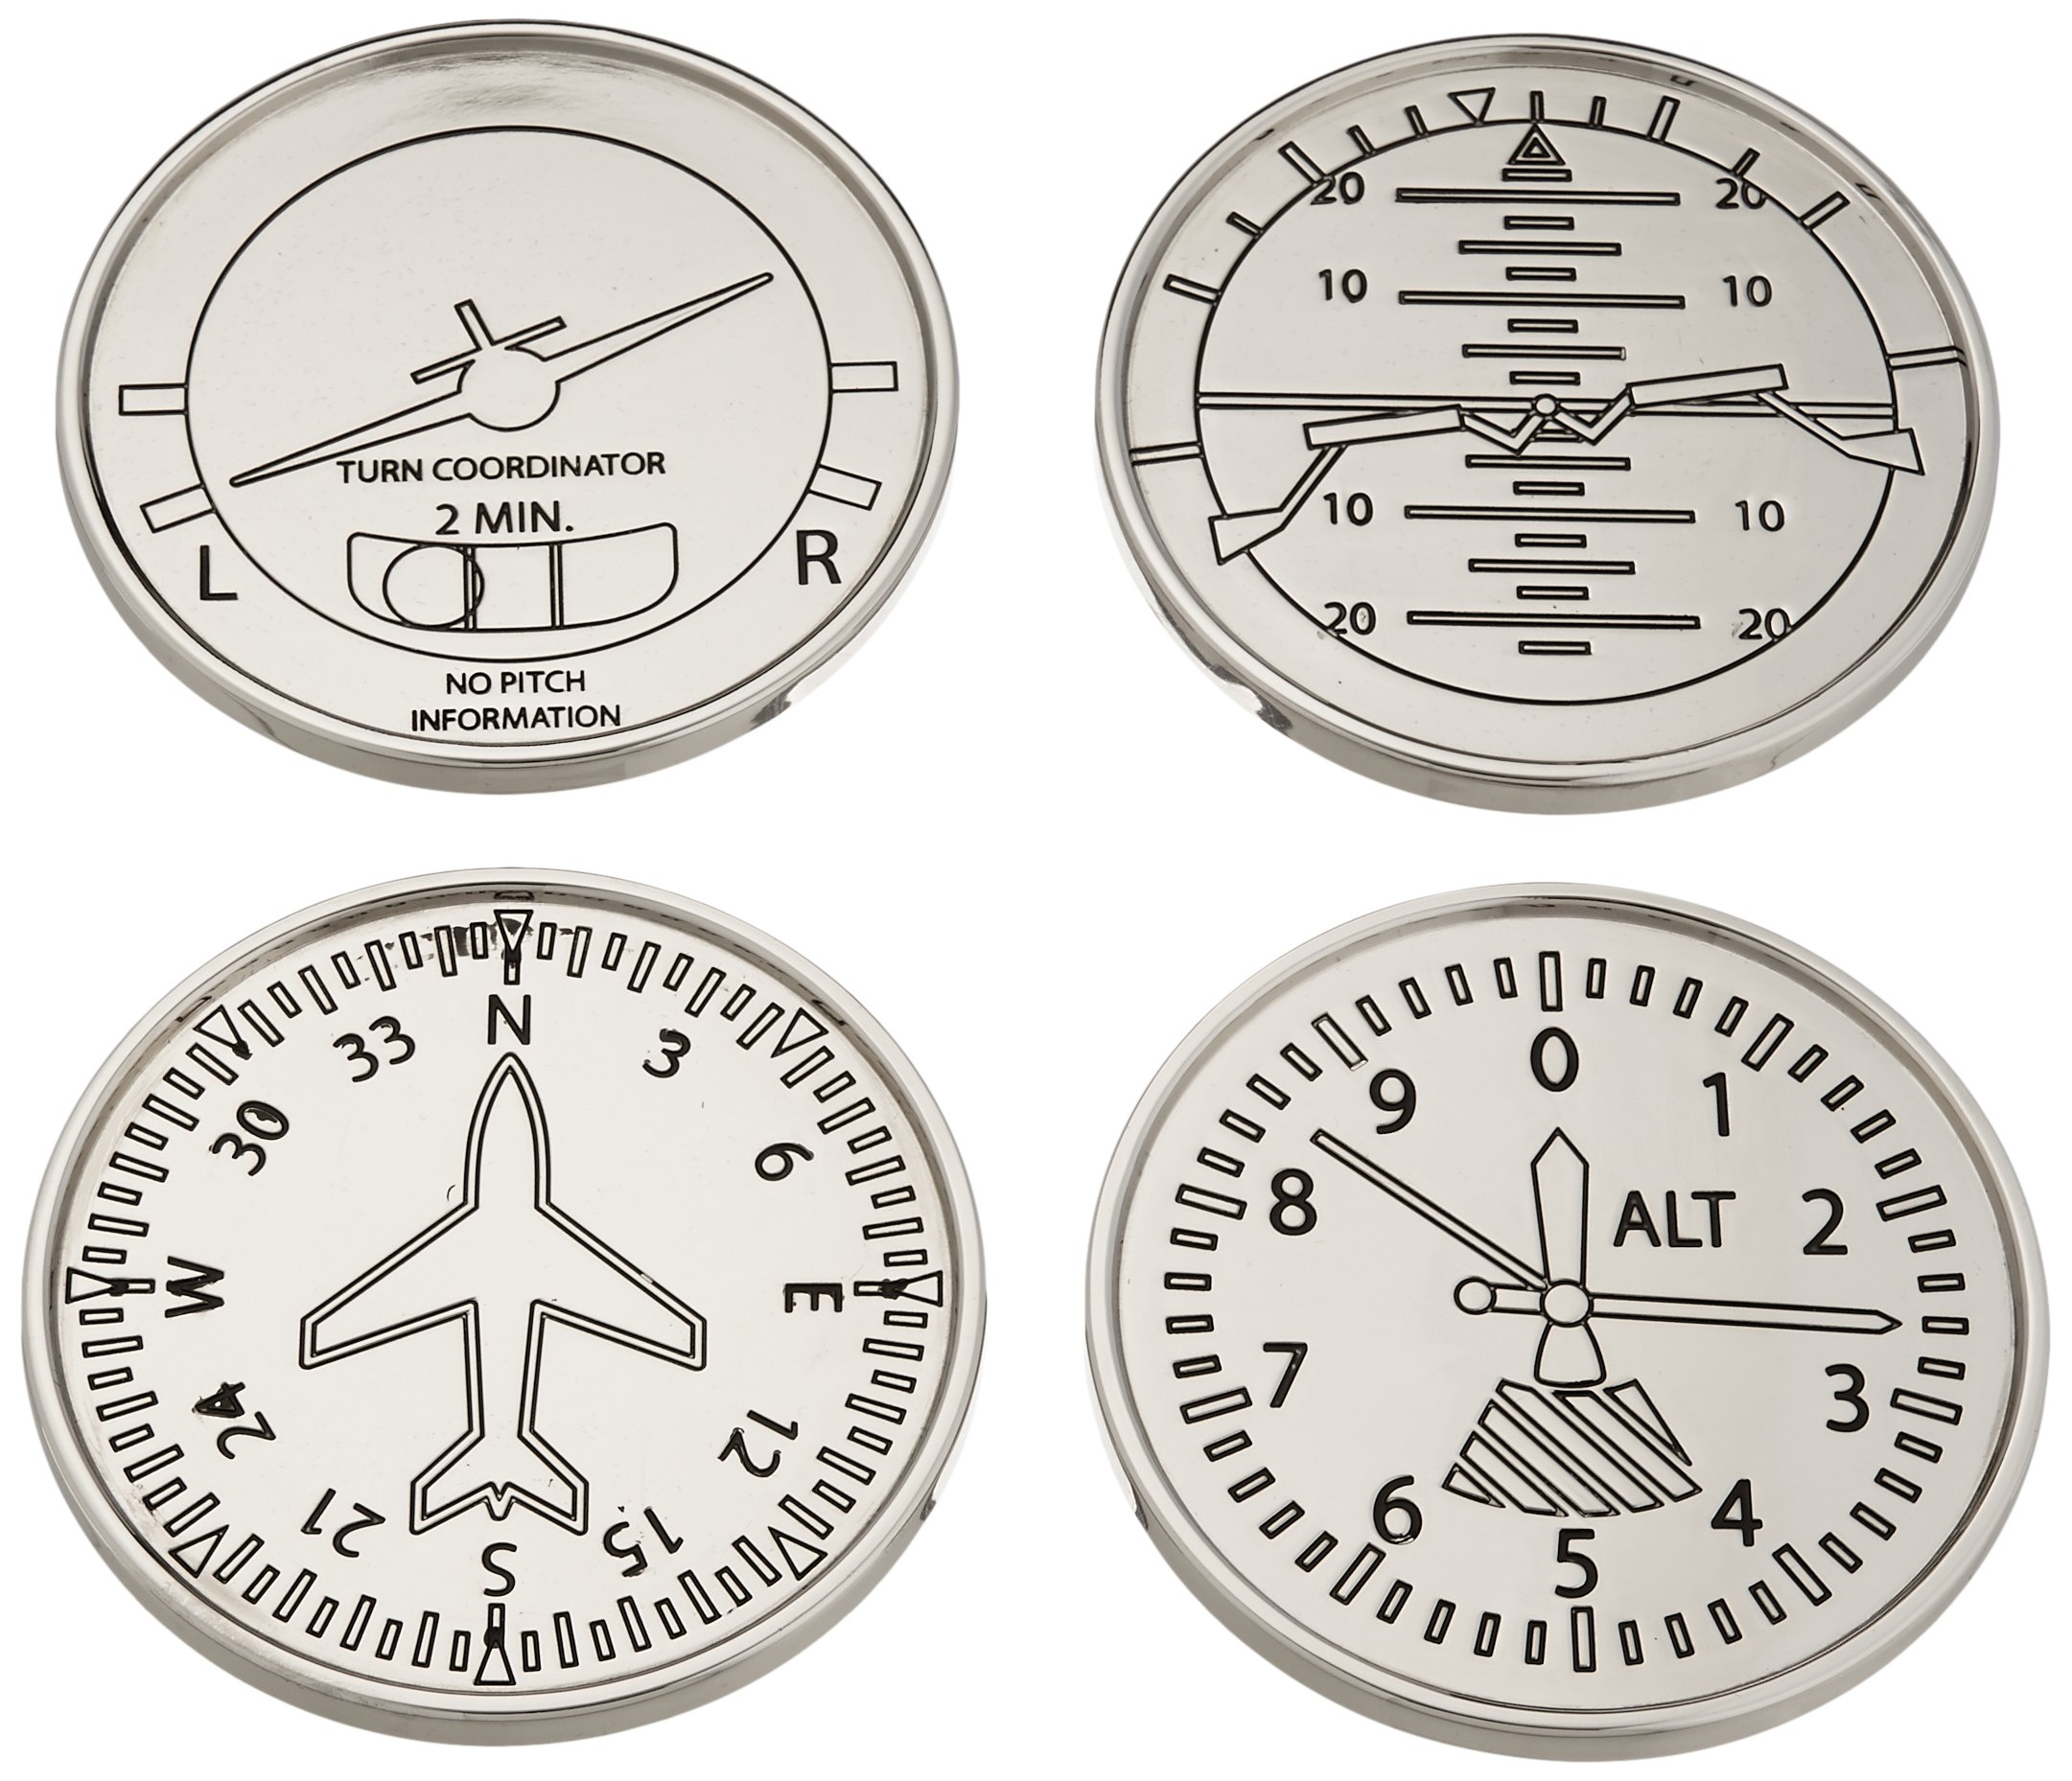 GODINGER SILVER ART Airplane Coasters, Set of 4 by Godinger